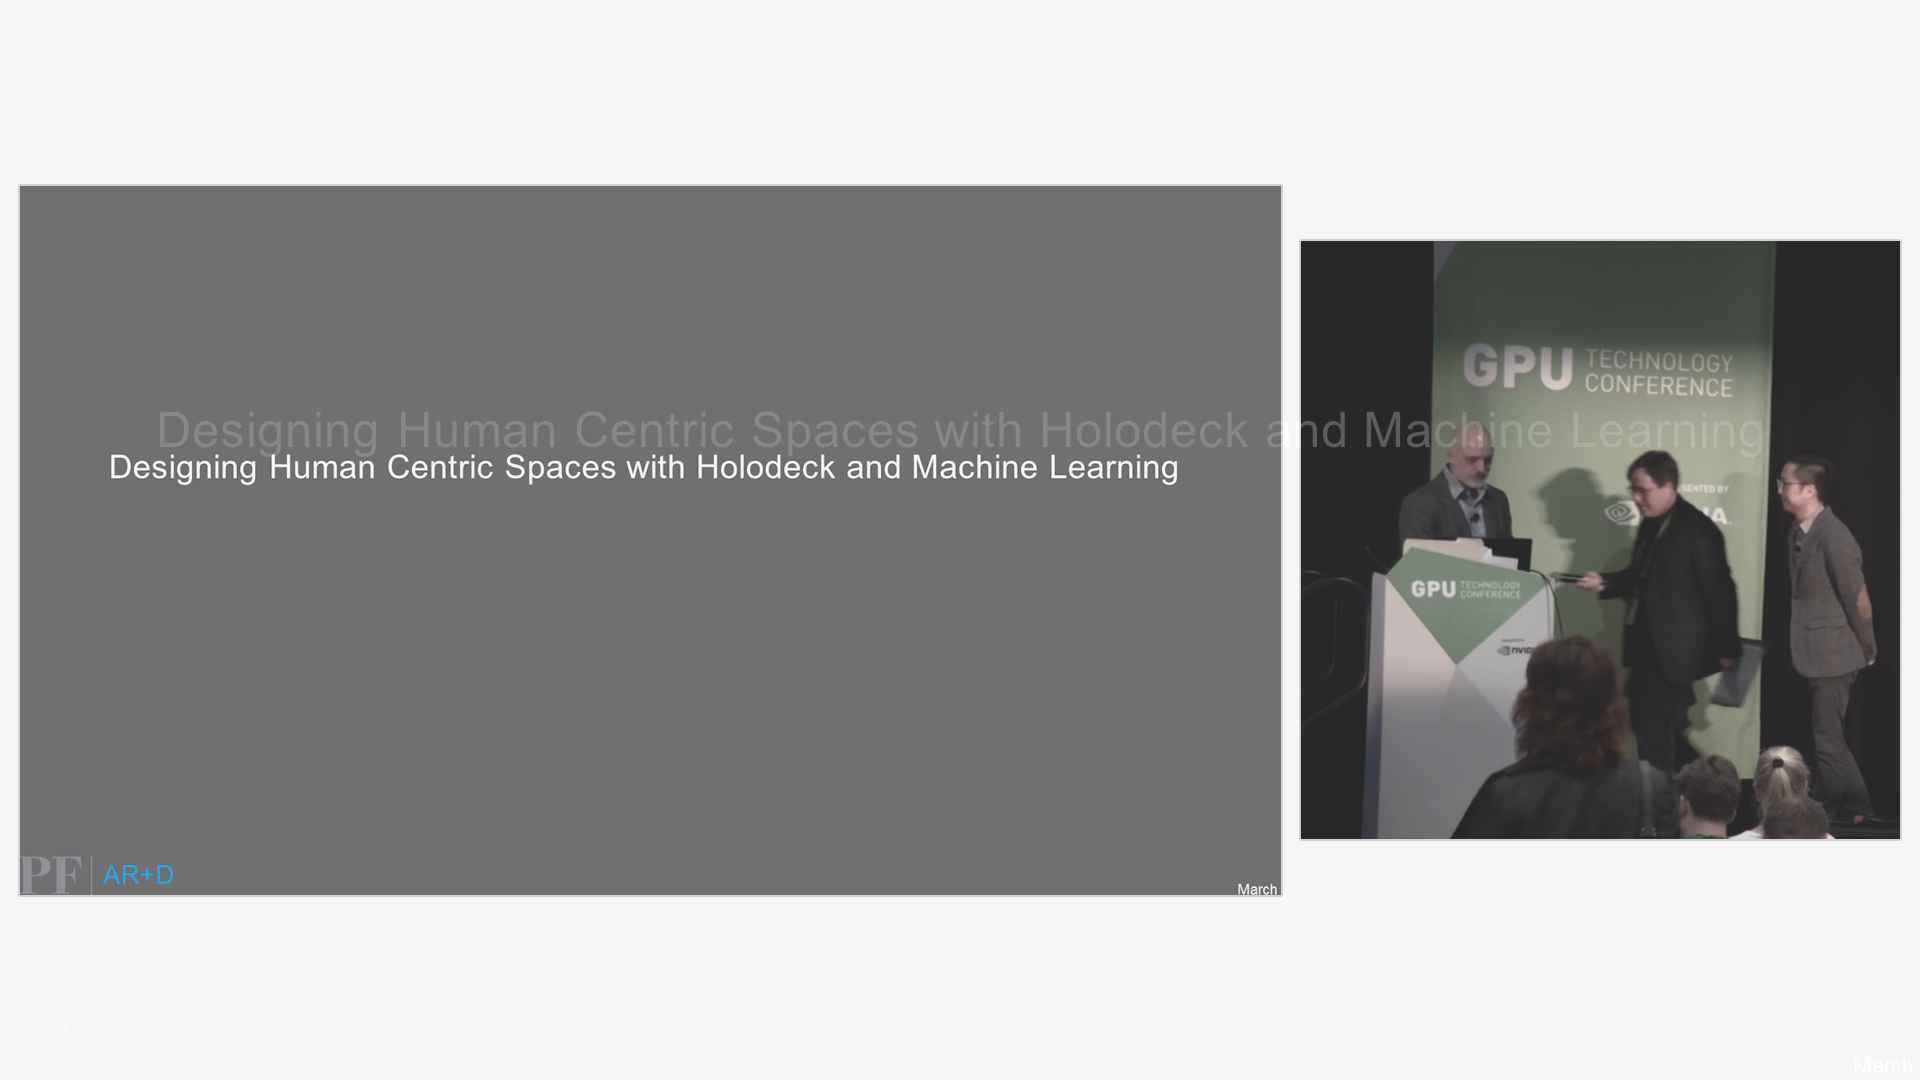 Designing Human Centric Spaces with Holodeck and Machine Learning - 25 Minutes